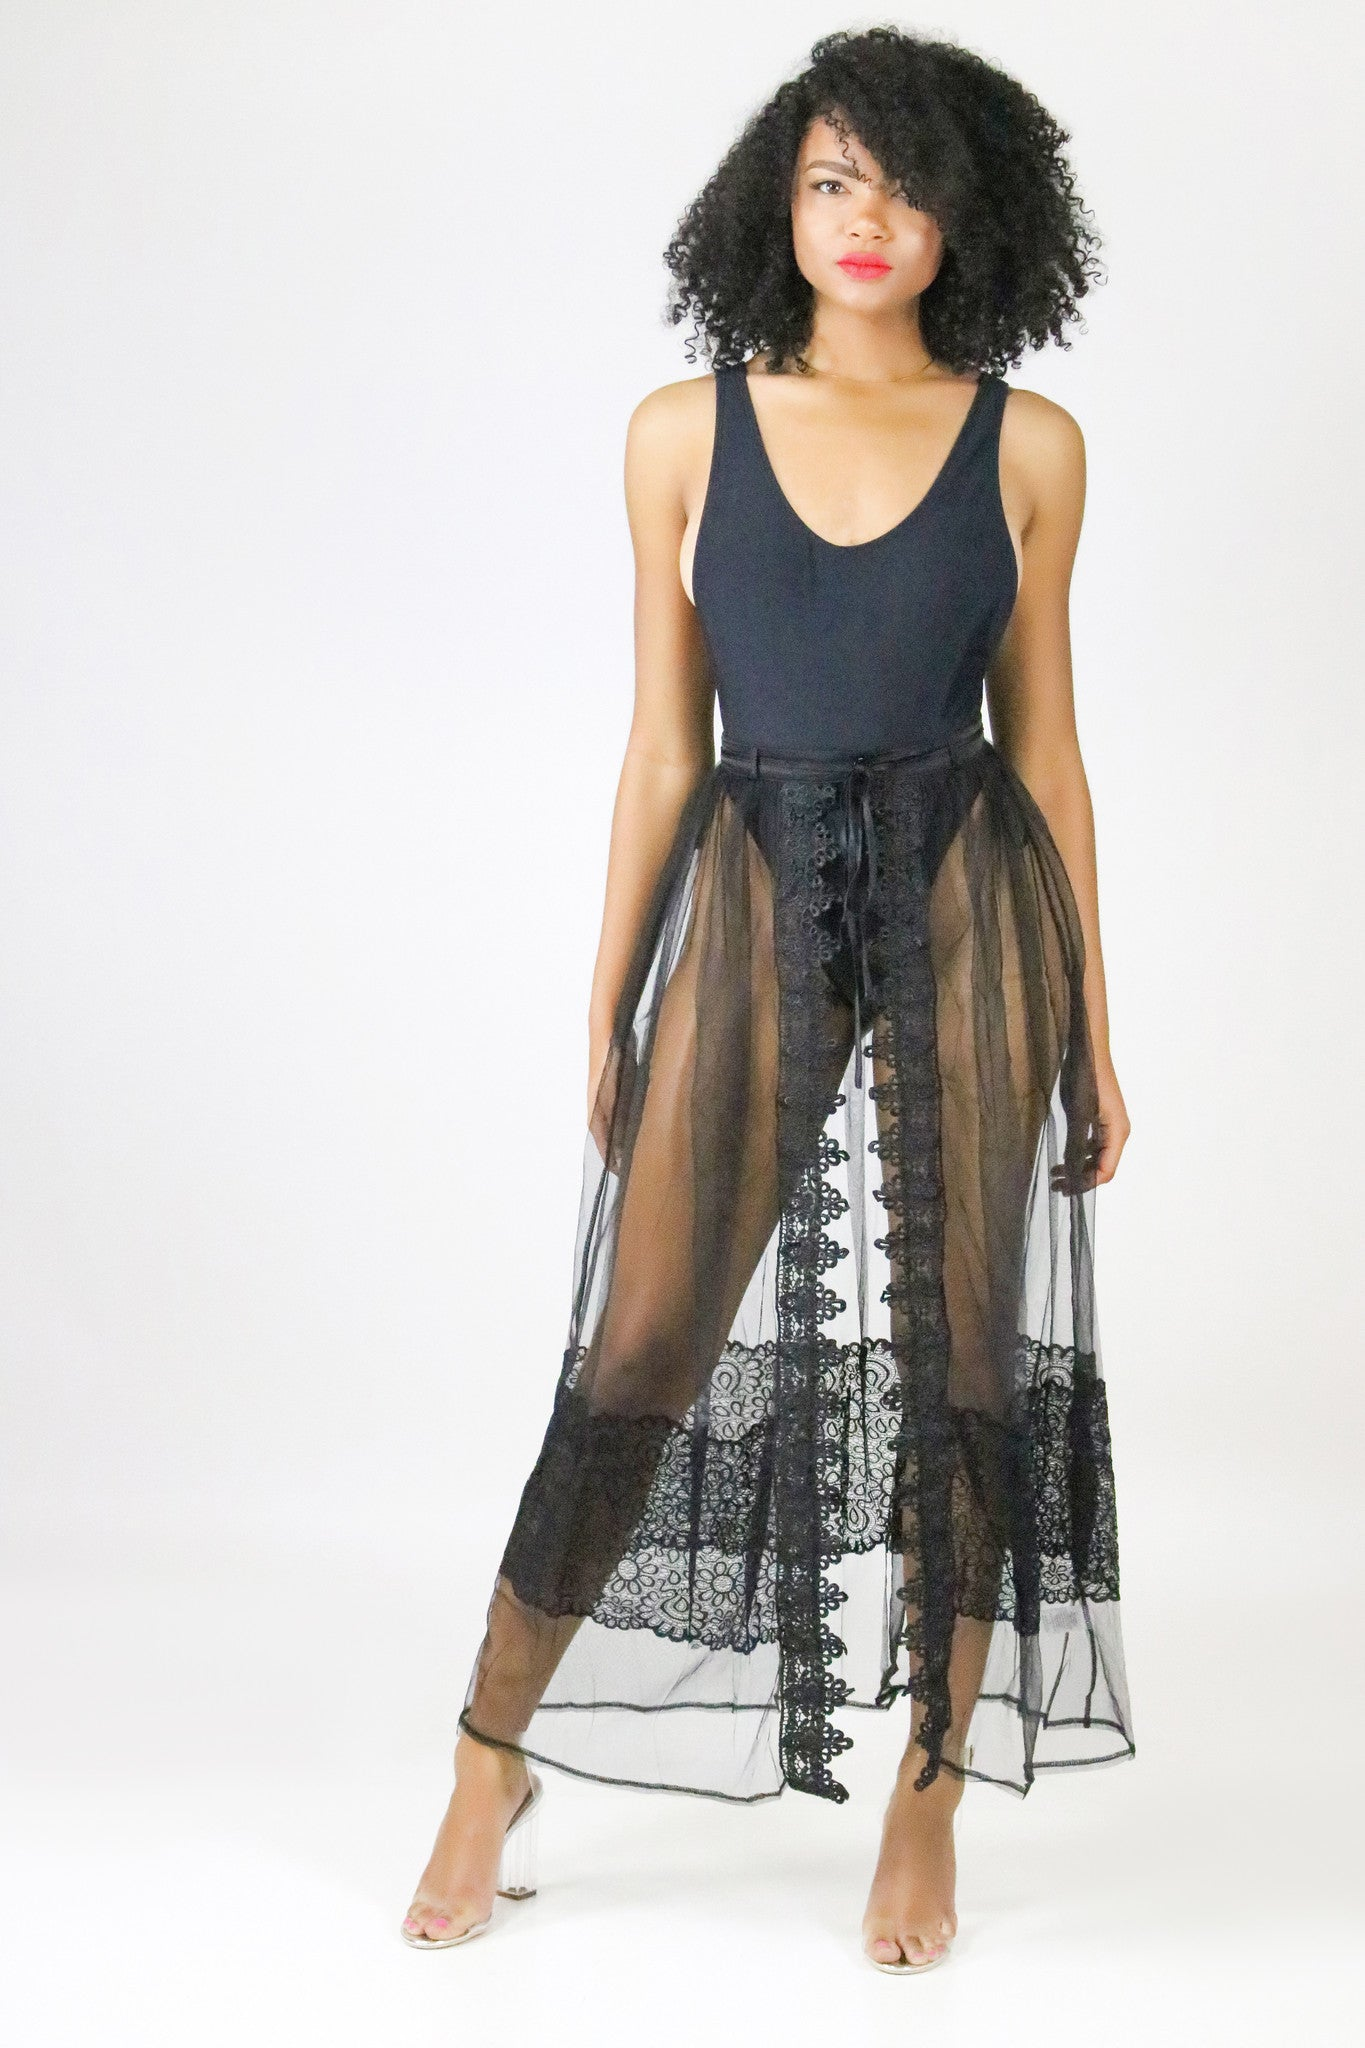 new release hot-selling discount bright in luster Sheer Lace Maxi Skirt – The Difference Boutique